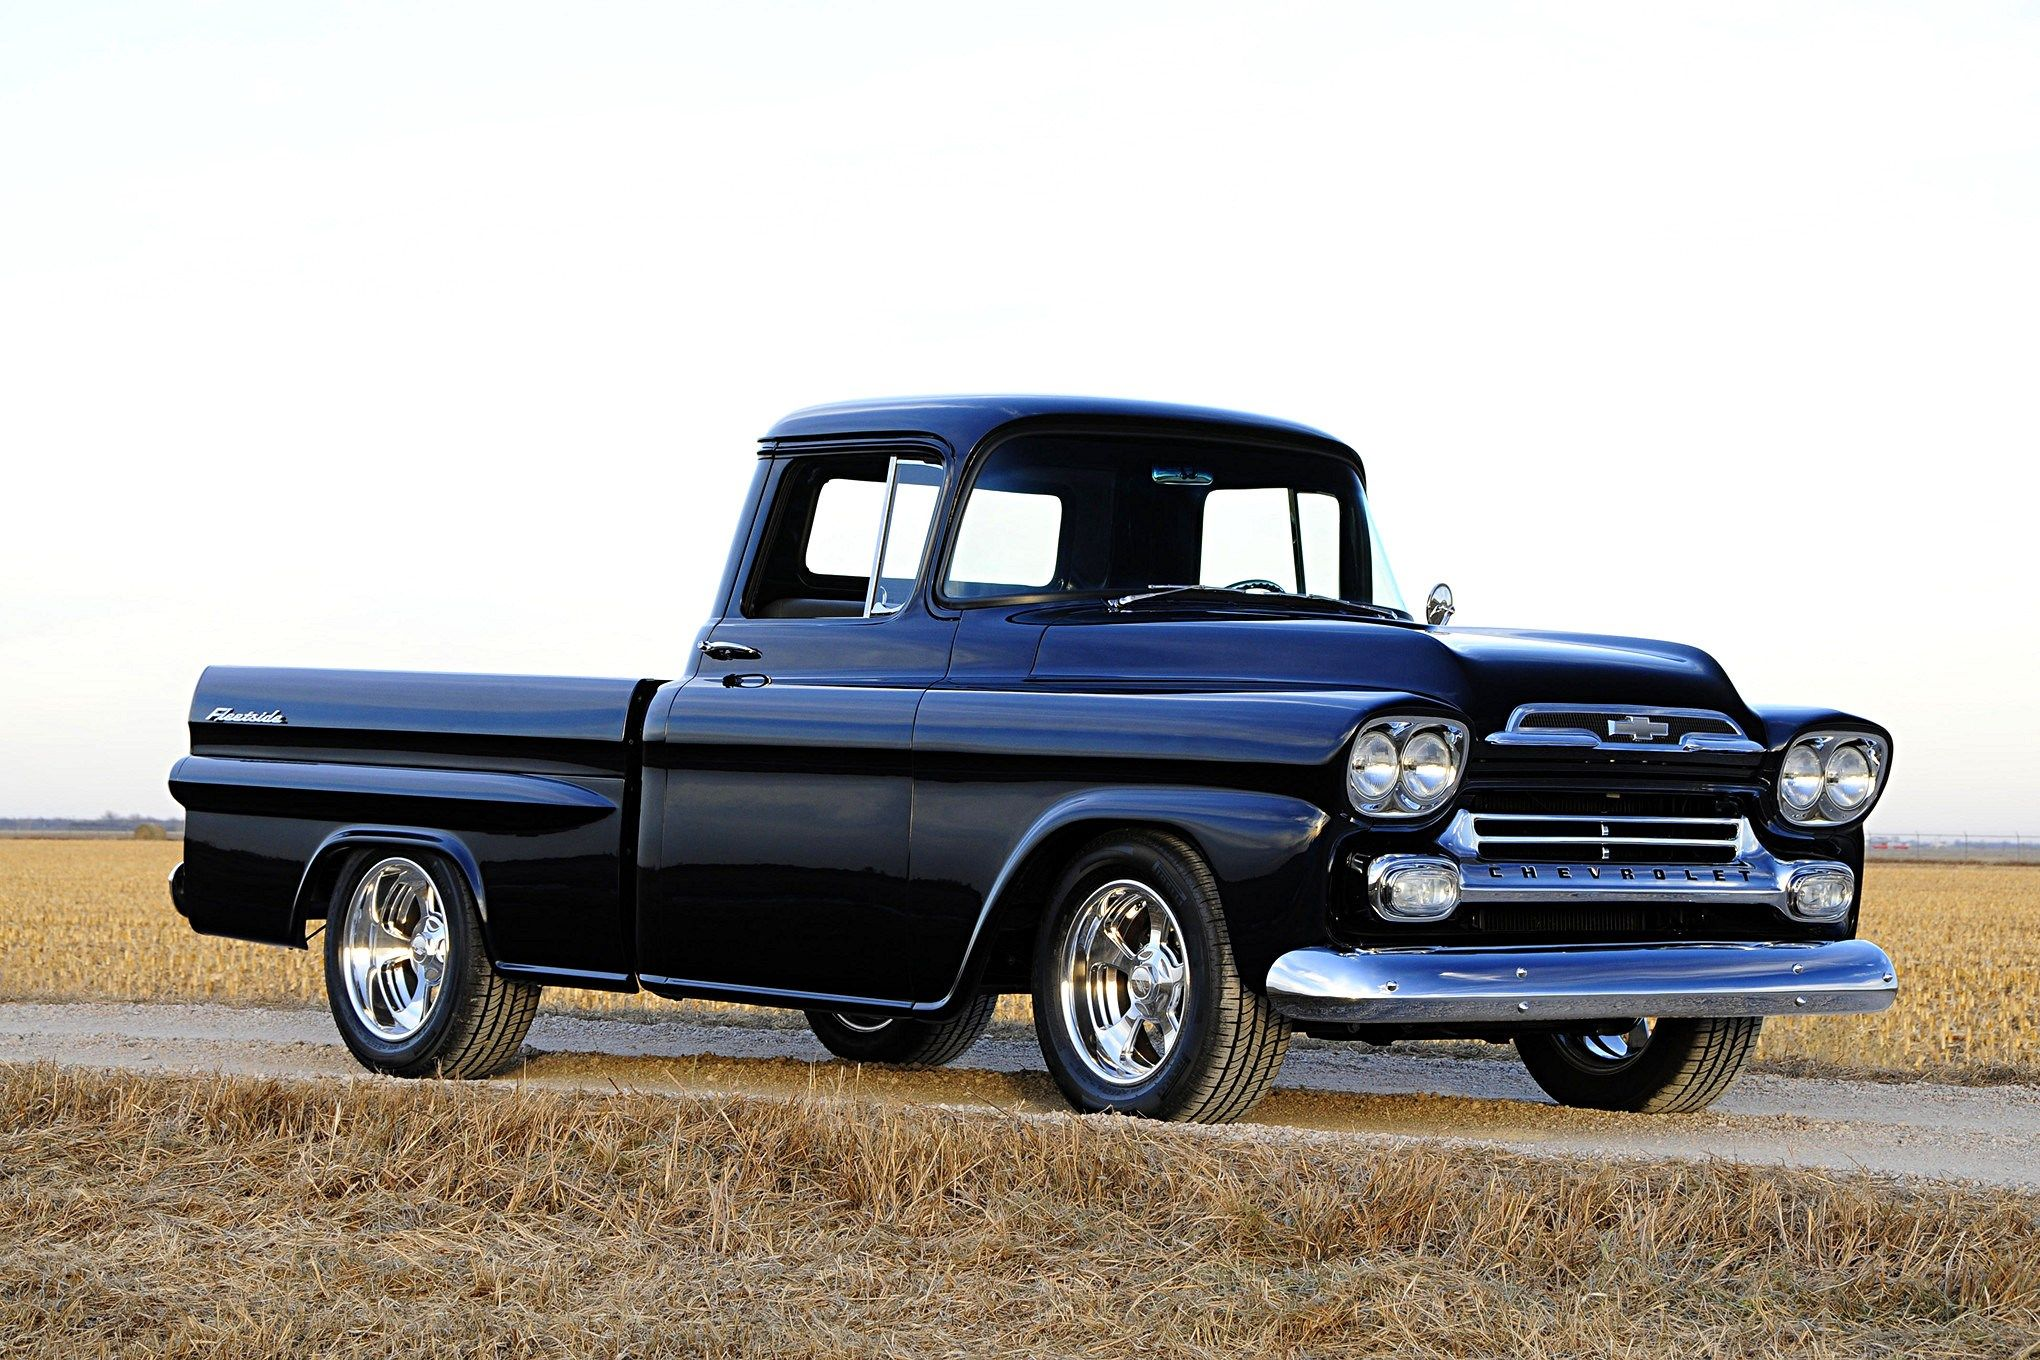 High Resolution Wallpapers = 1959 chevrolet apache picture by Taft